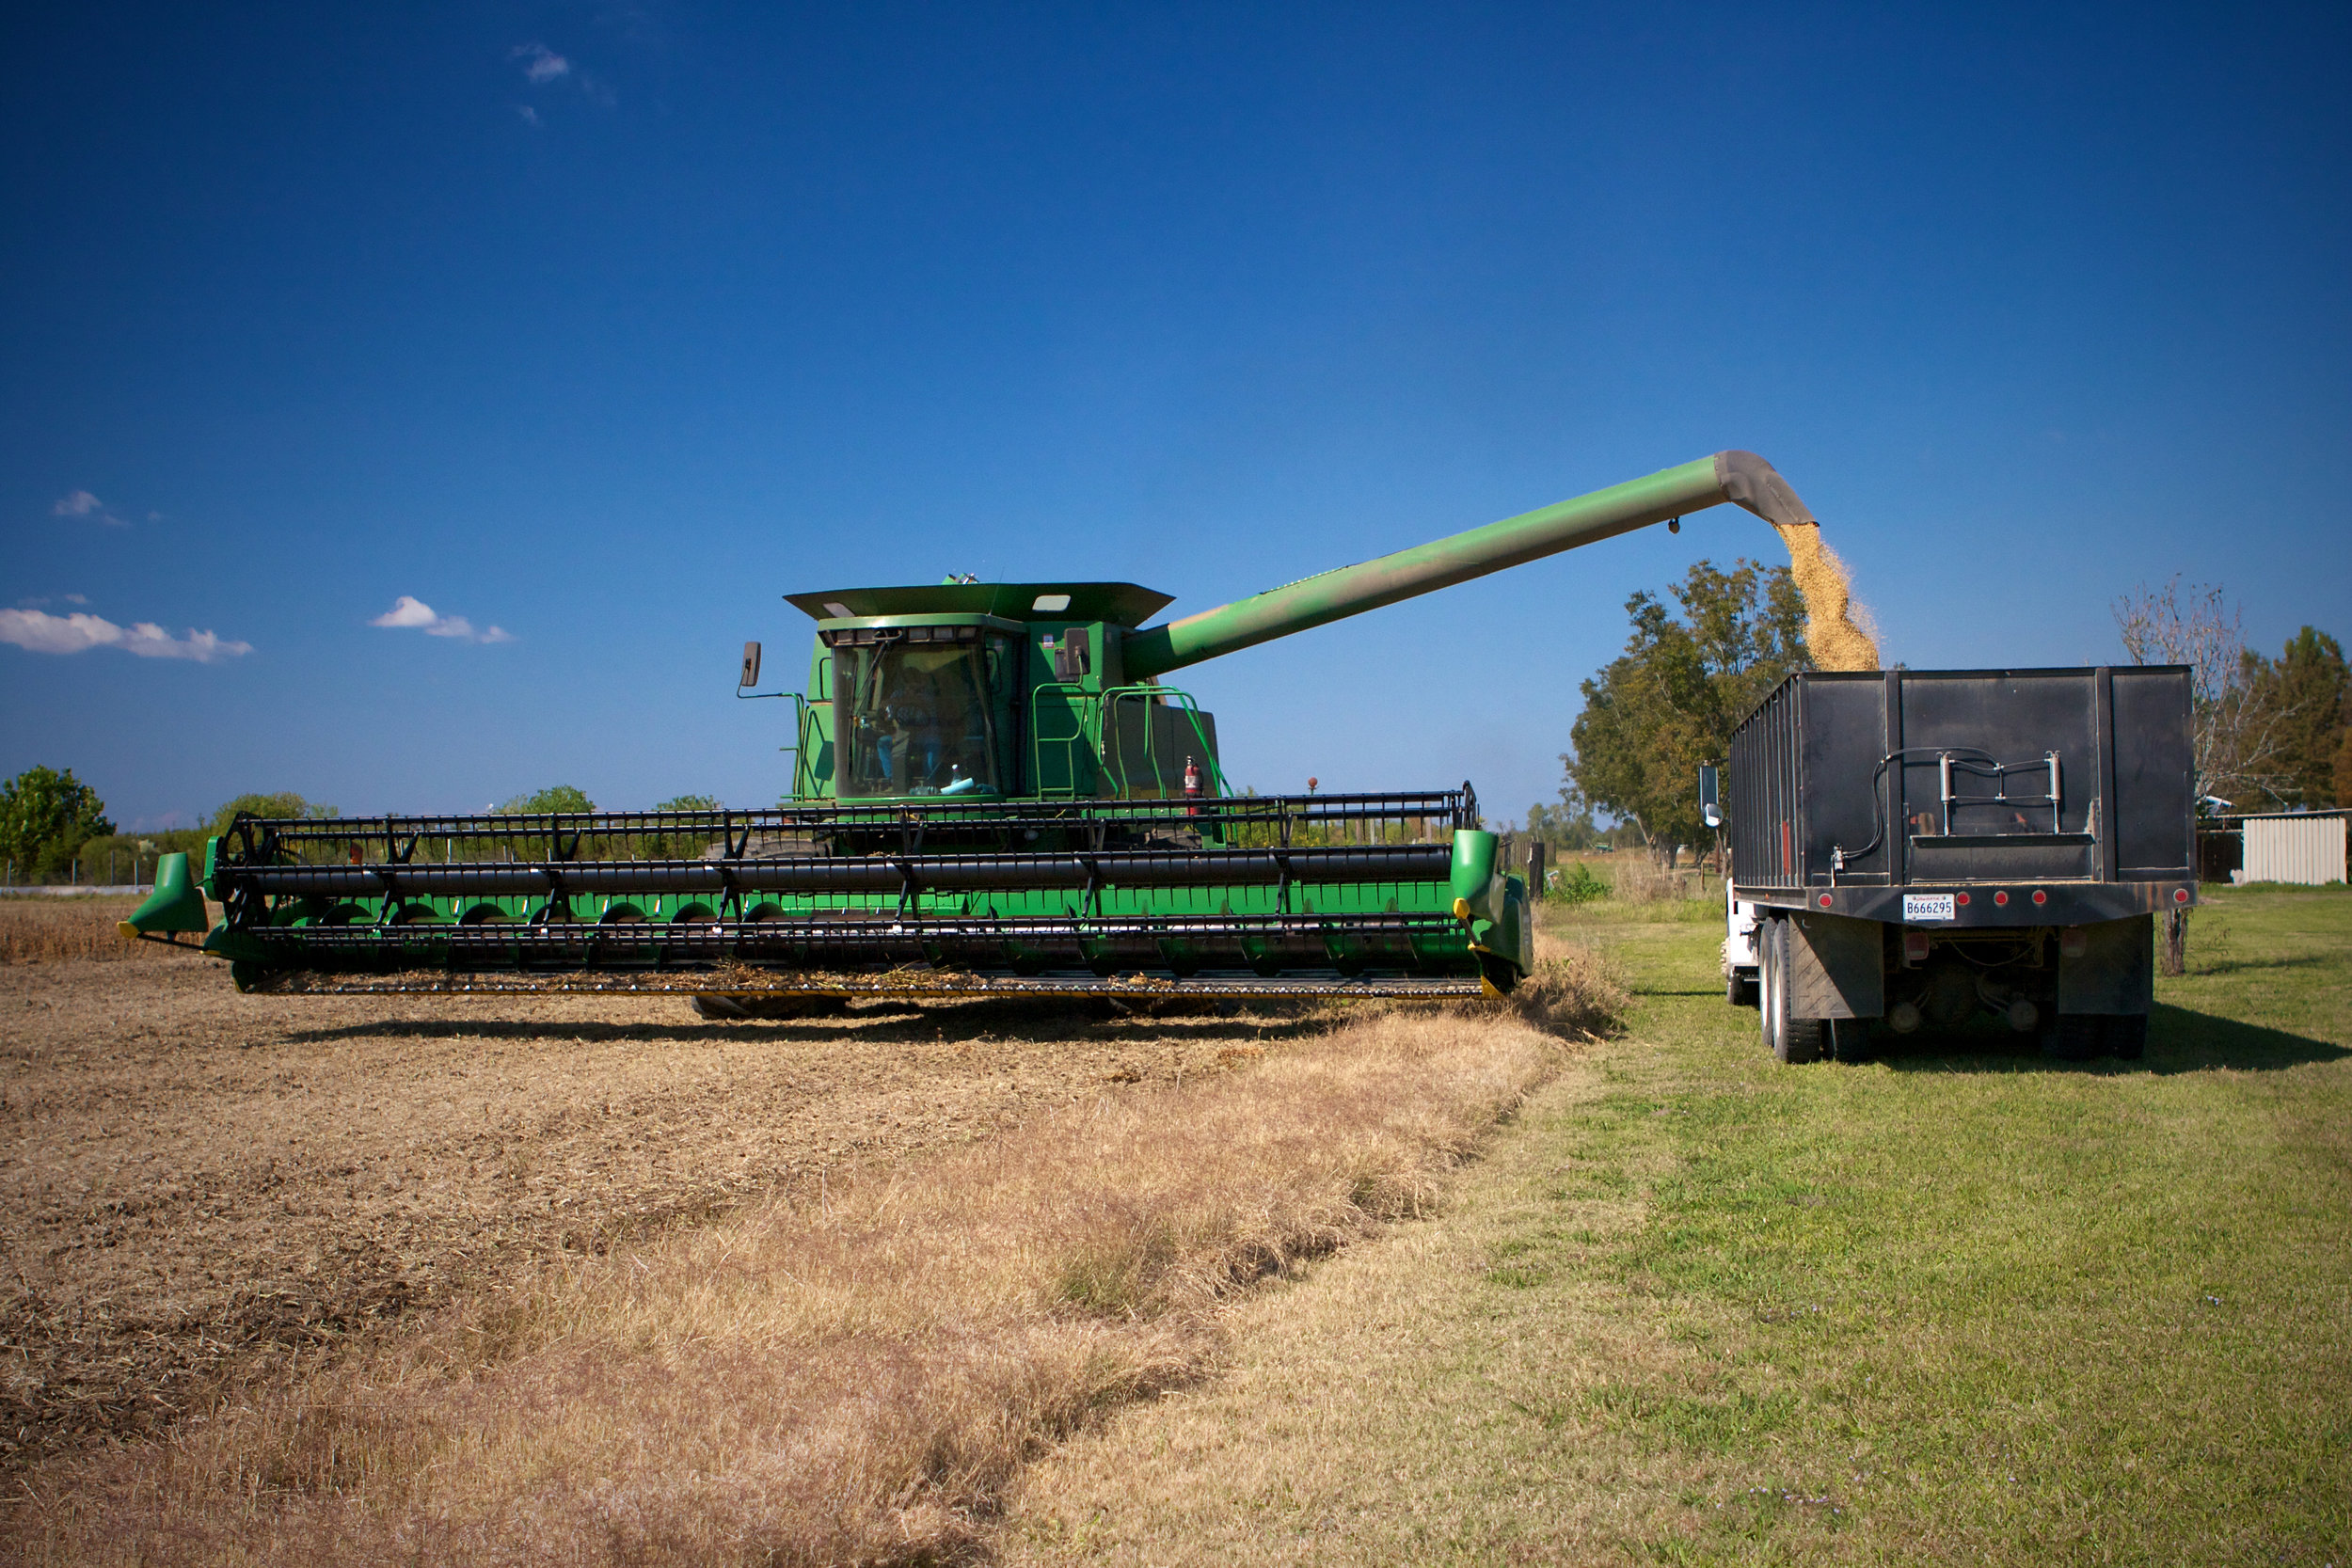 SquarespaceImage19-soybeans-unloading.jpg